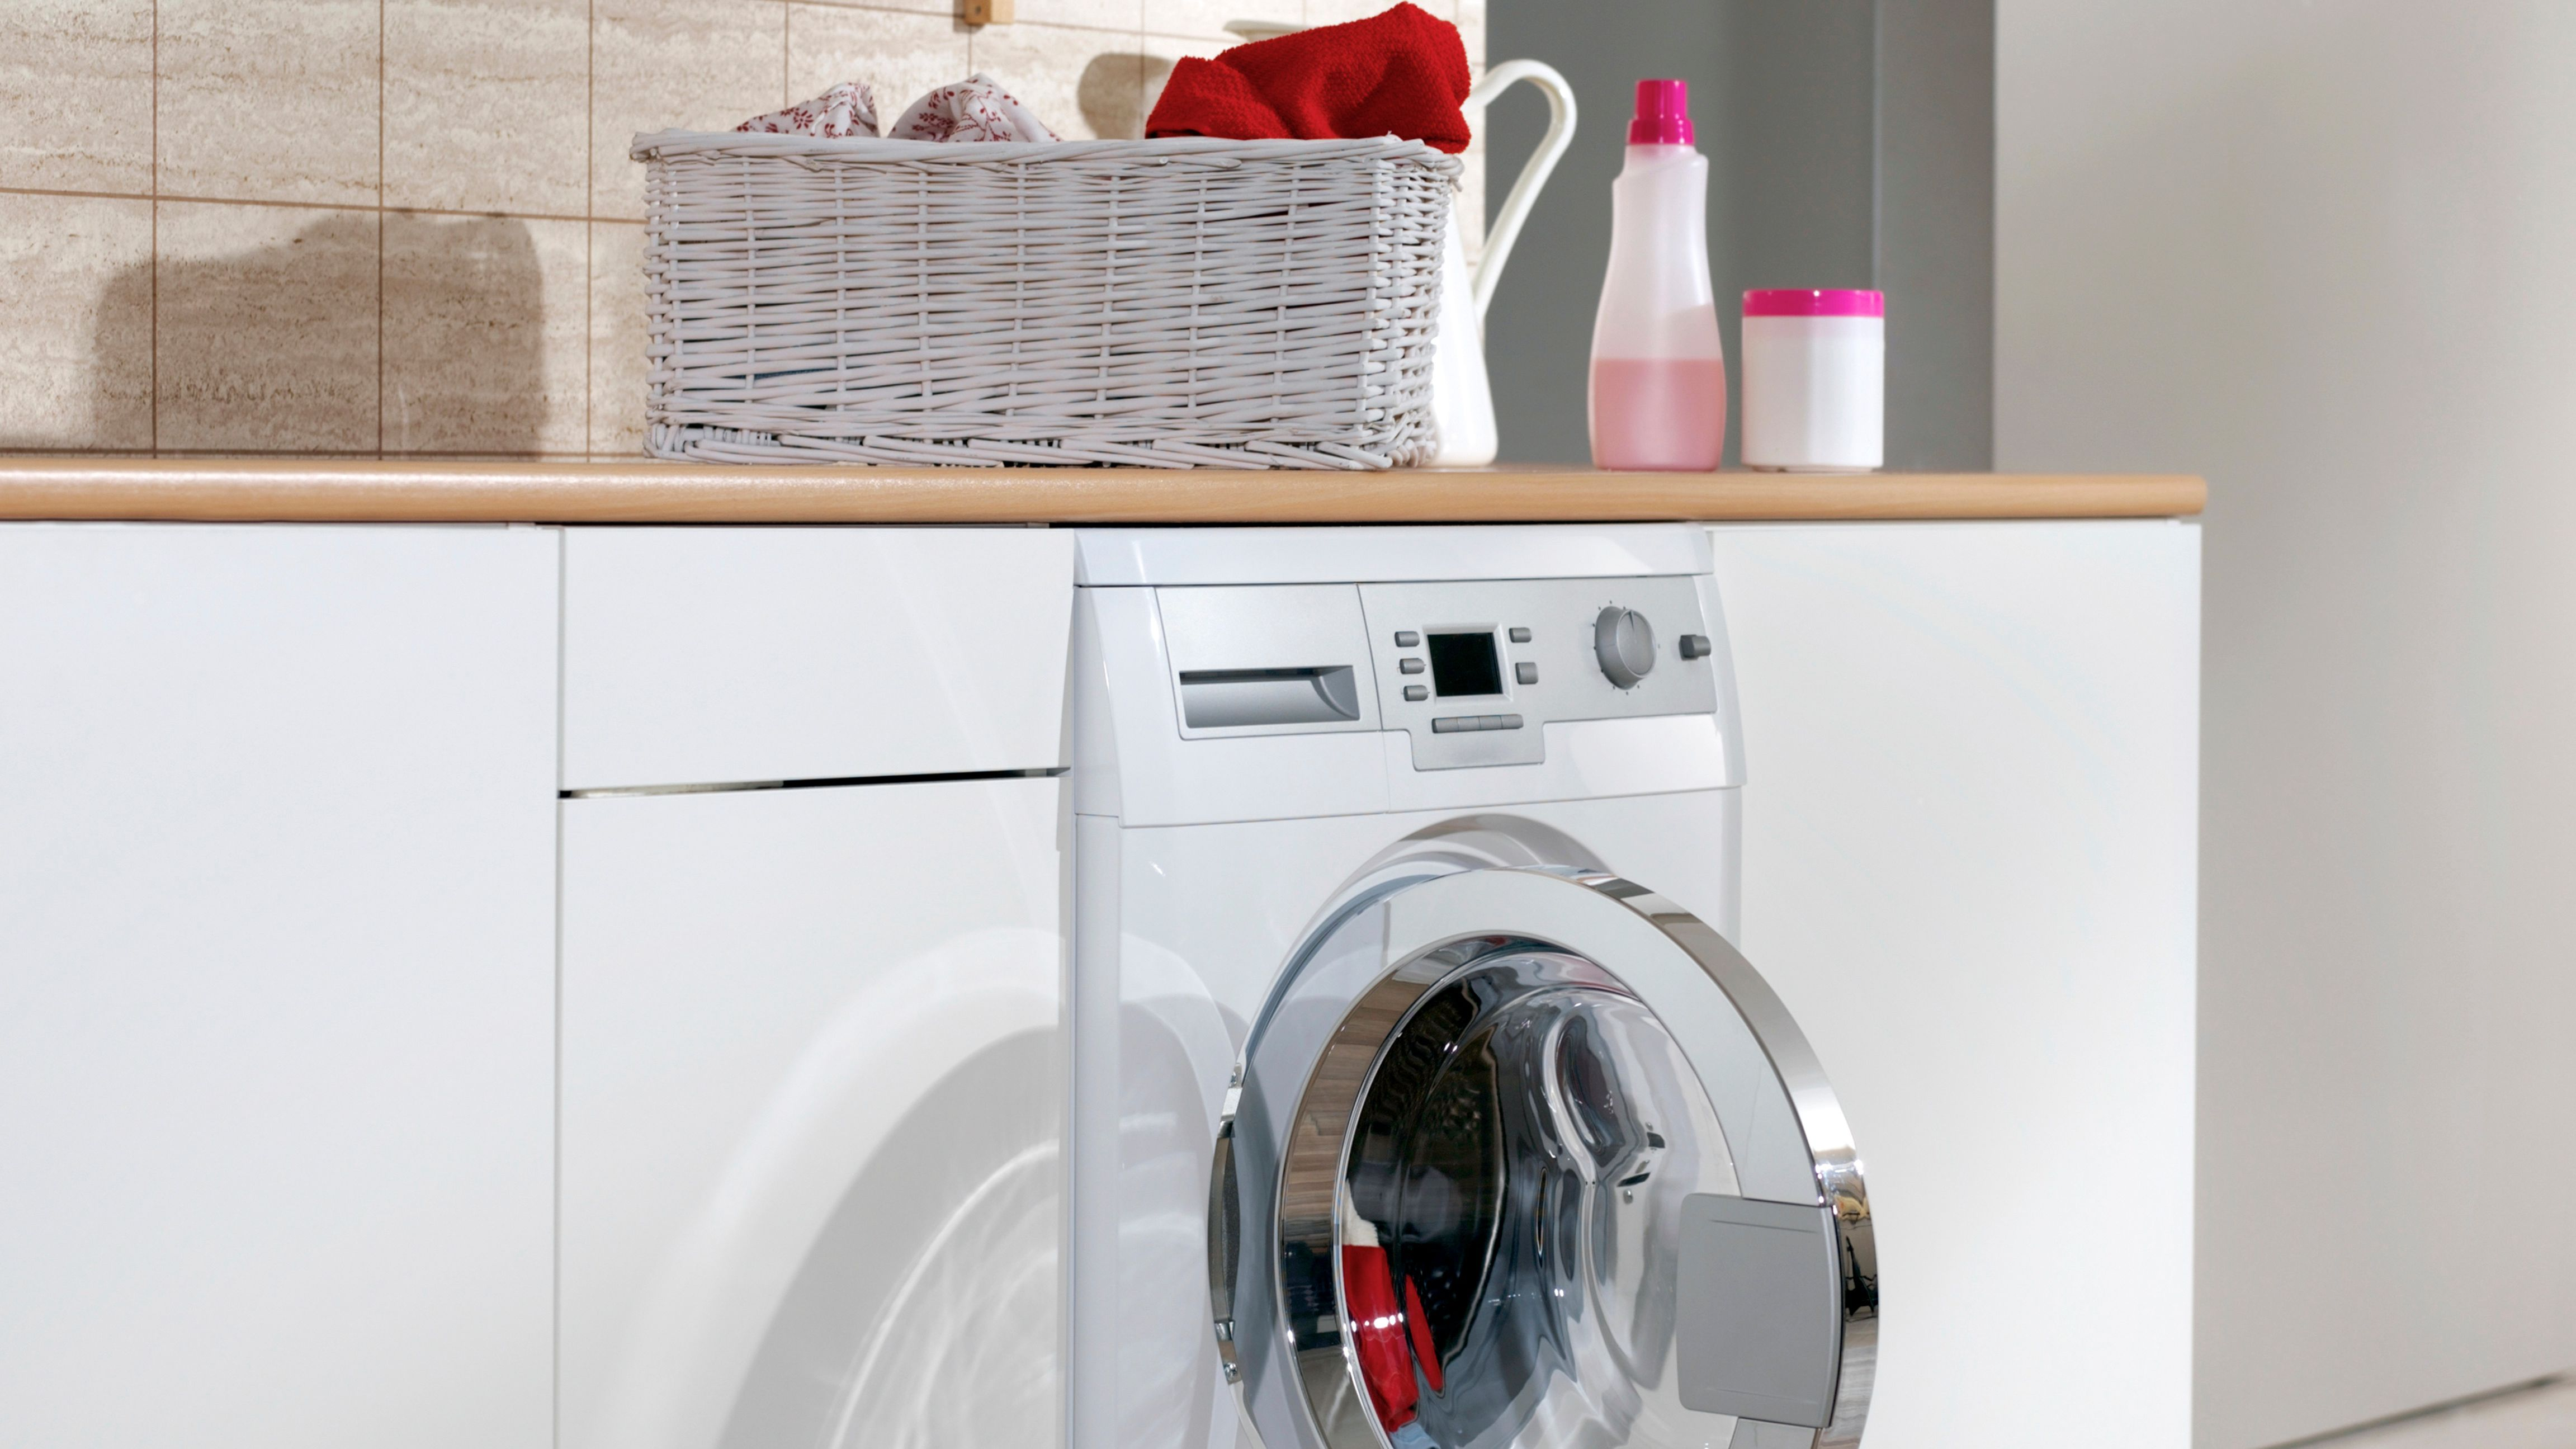 How to Sanitize and Disinfect a Washer and Dryer